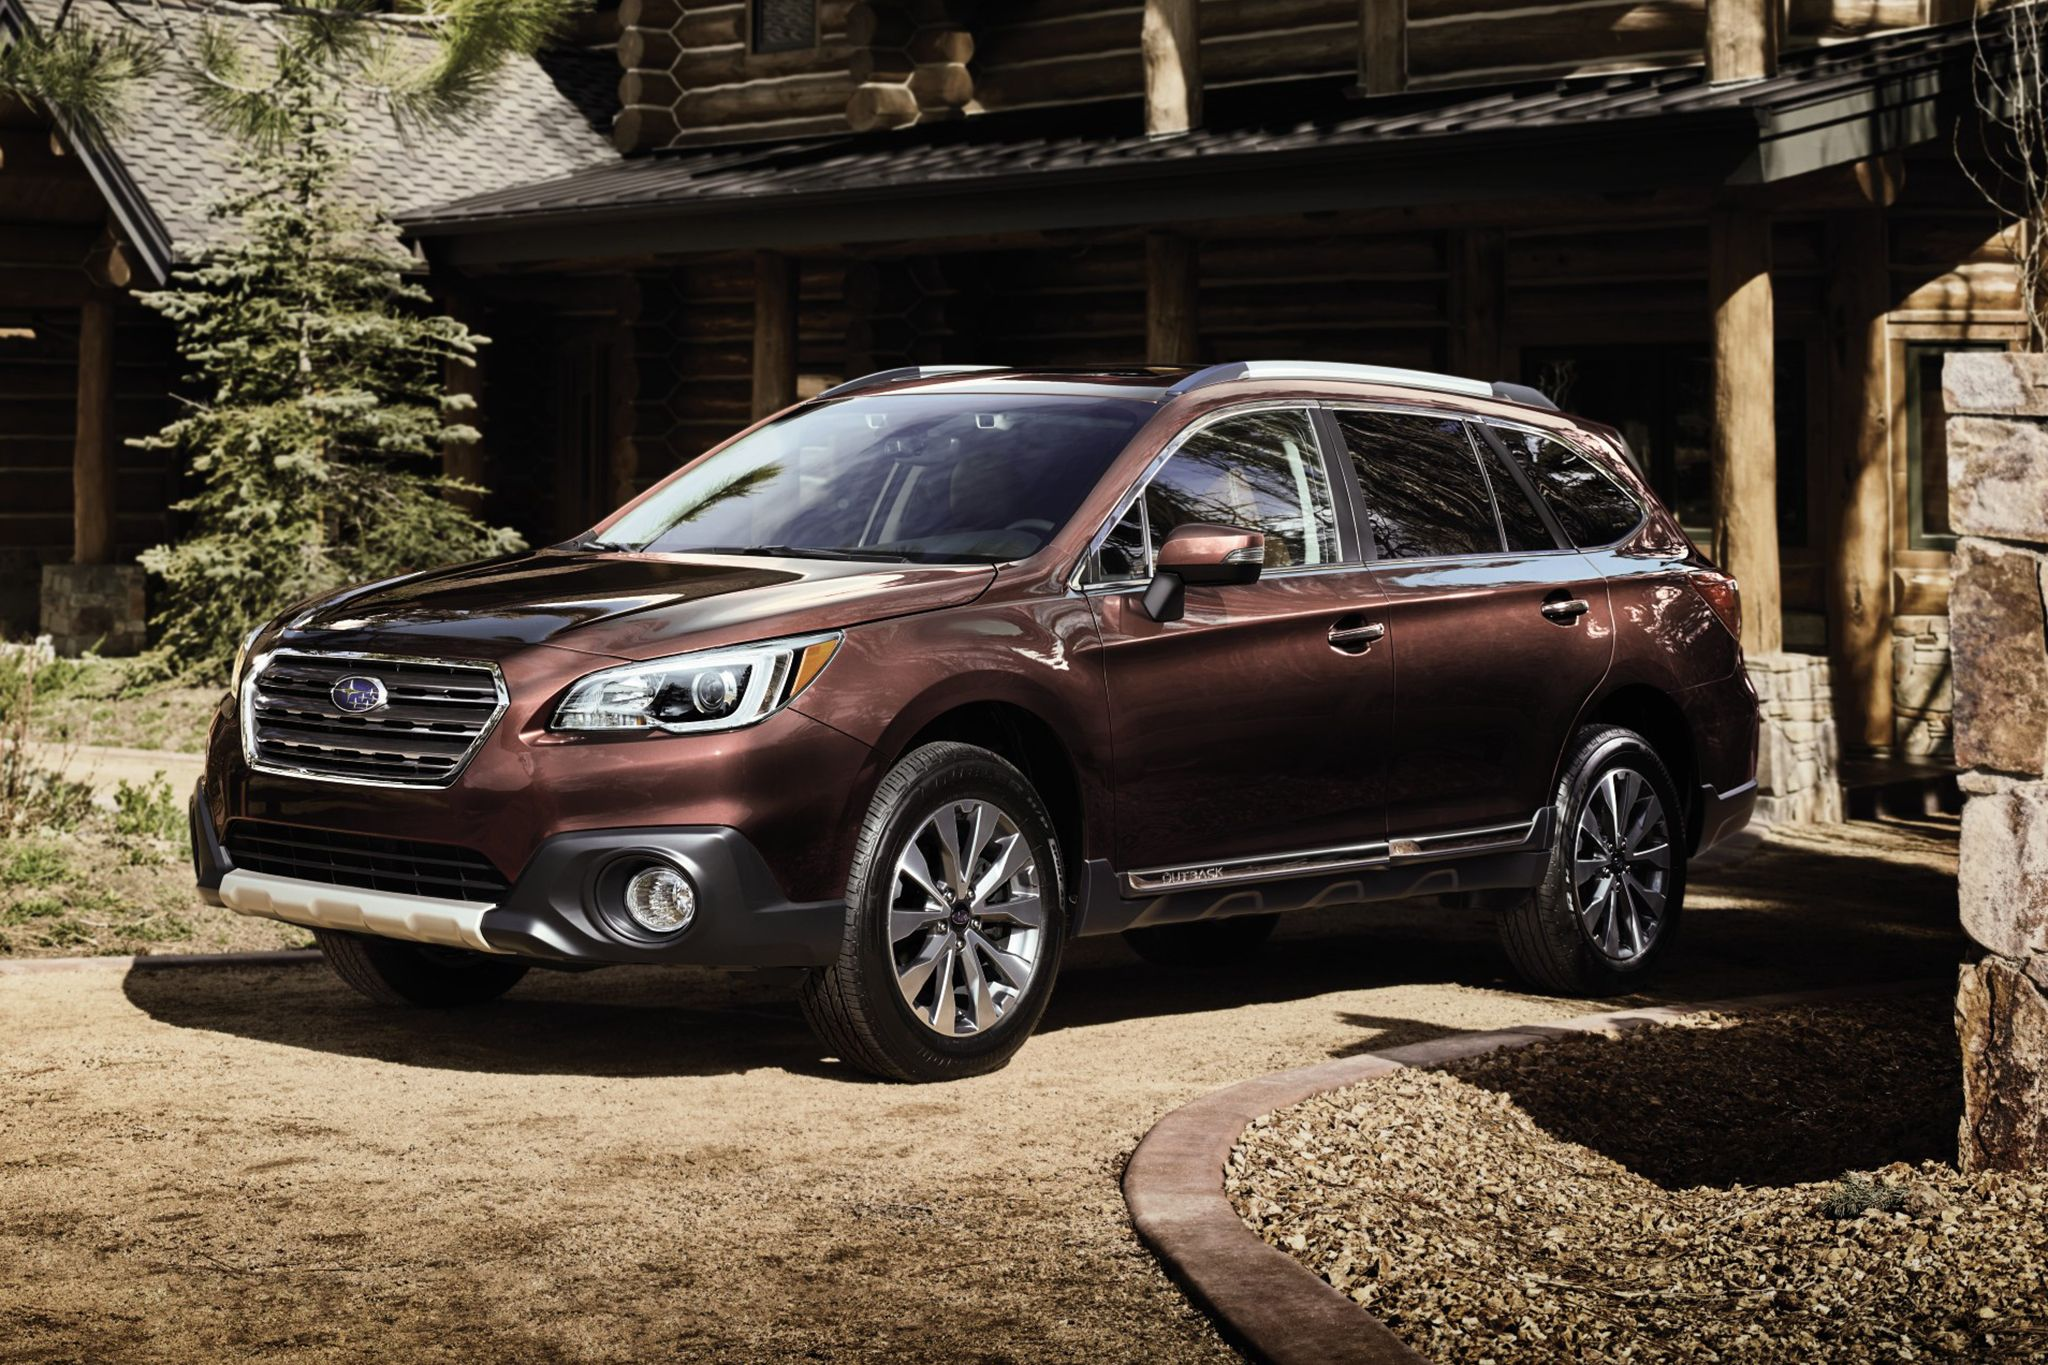 The new 2017 subaru outback touring and new 2017 subaru legacy subaru introduces 2017 outback touring and legacy sport trims subaru has expanded the outback and legacy range with the addition of two new trim levels vanachro Gallery